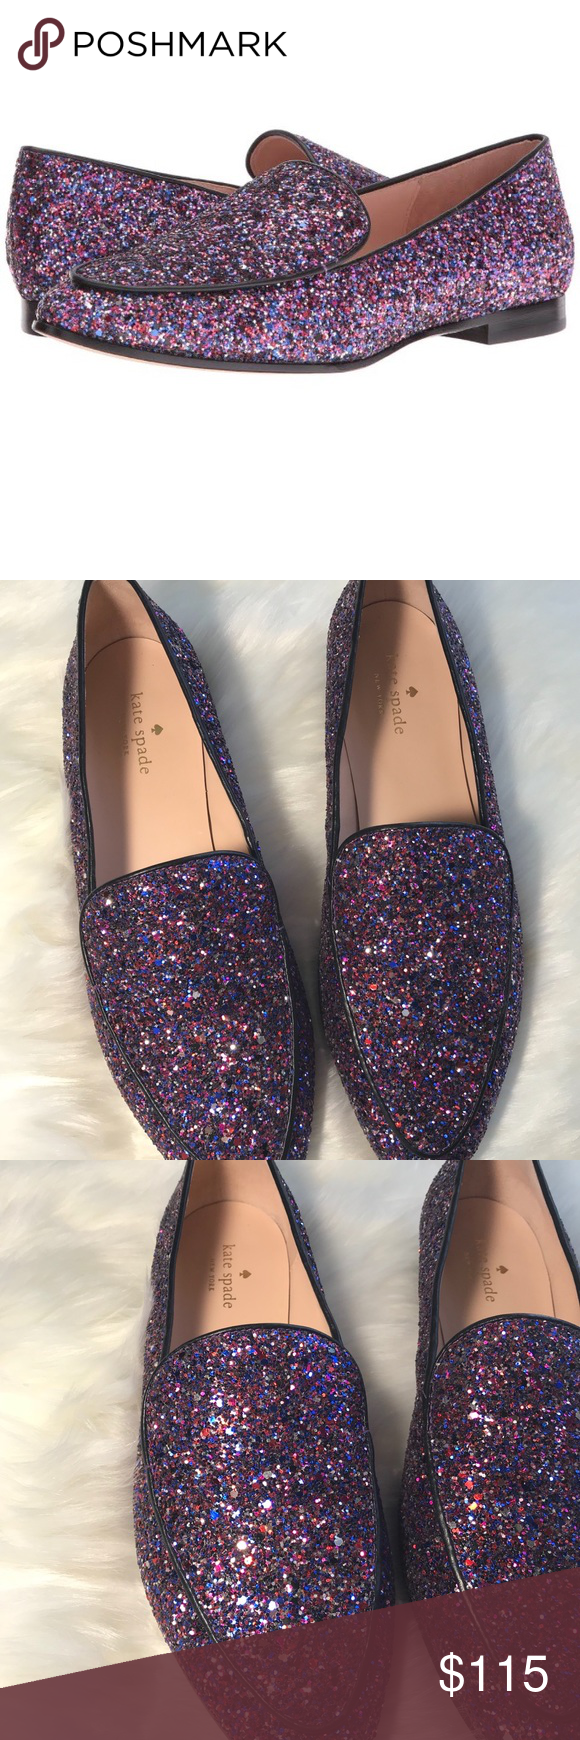 7ff7dd3ecda Kate Spade New York Calliope Women s Shoes Purple Multi Glitter Black. Size  10 Classic point-toe loafers dusted ...